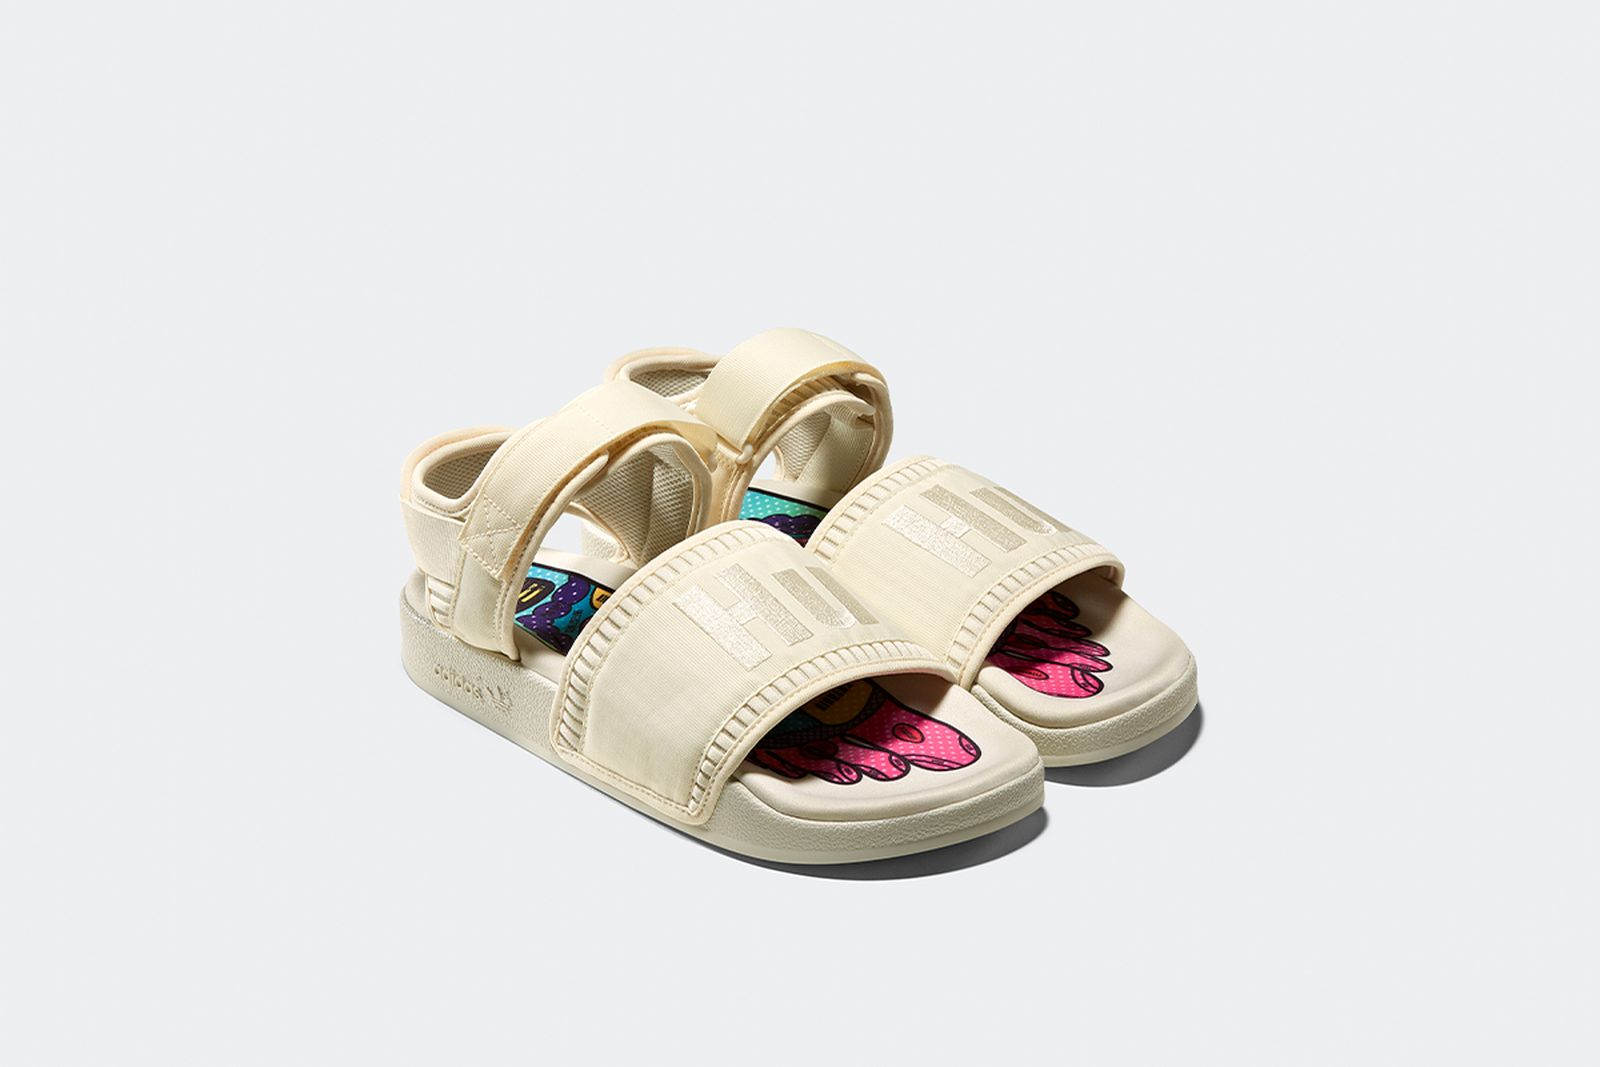 pharrell williams adidas originals now is her time collection release date price